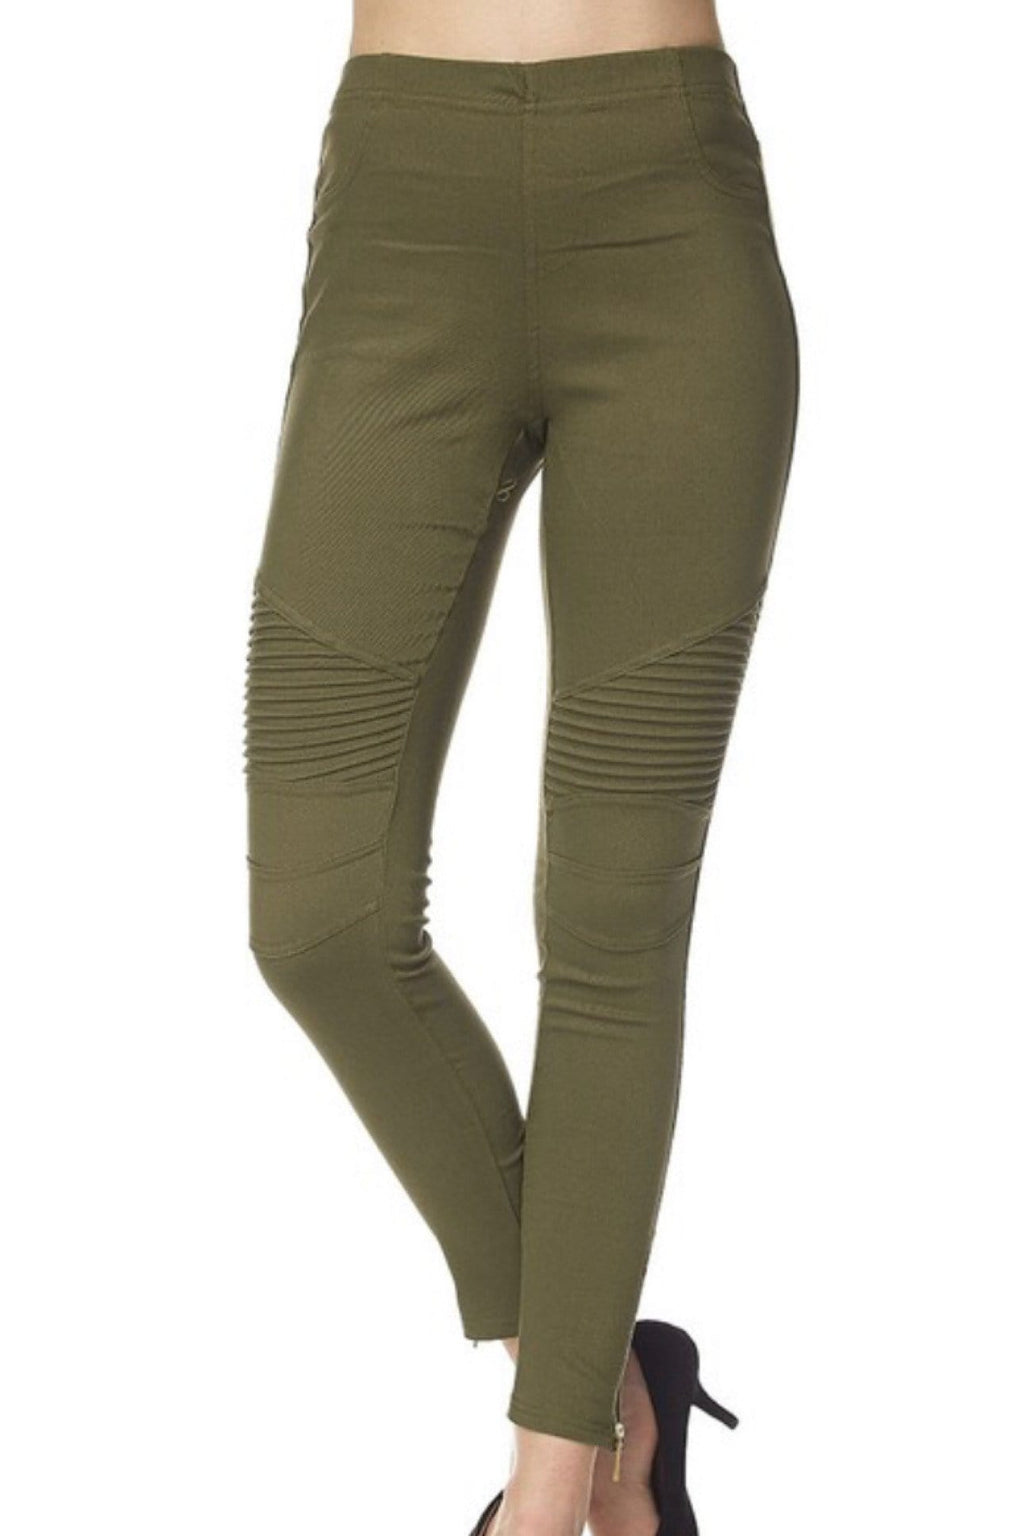 NEED FOR SPEED ZIPPER ANKLE MOTO LEGGINGS-OLIVE - Infinity Raine